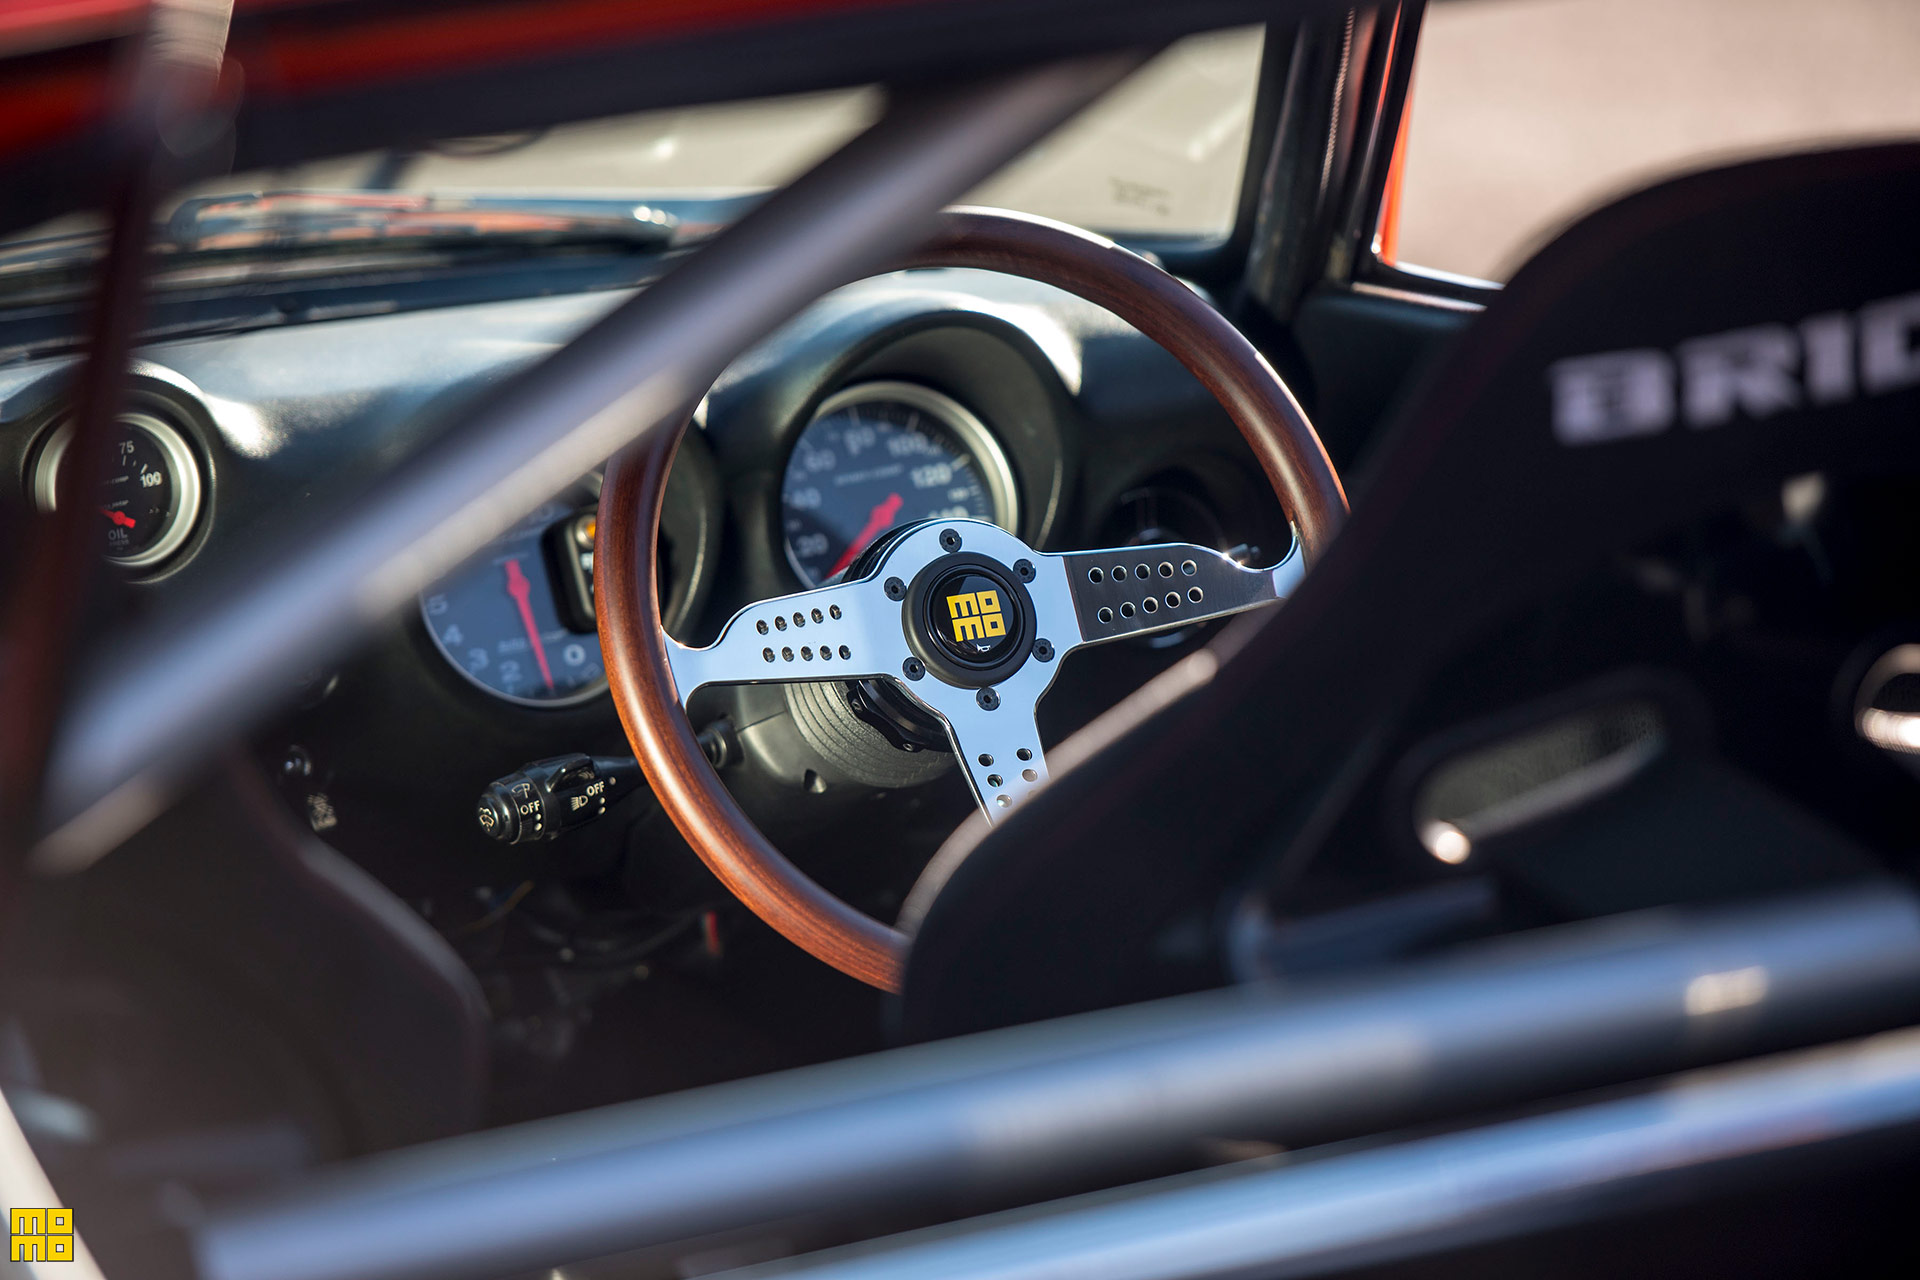 Datsun Fairlady 240z Featuring A Momo Super Grand Prix Steering Wheel Momo